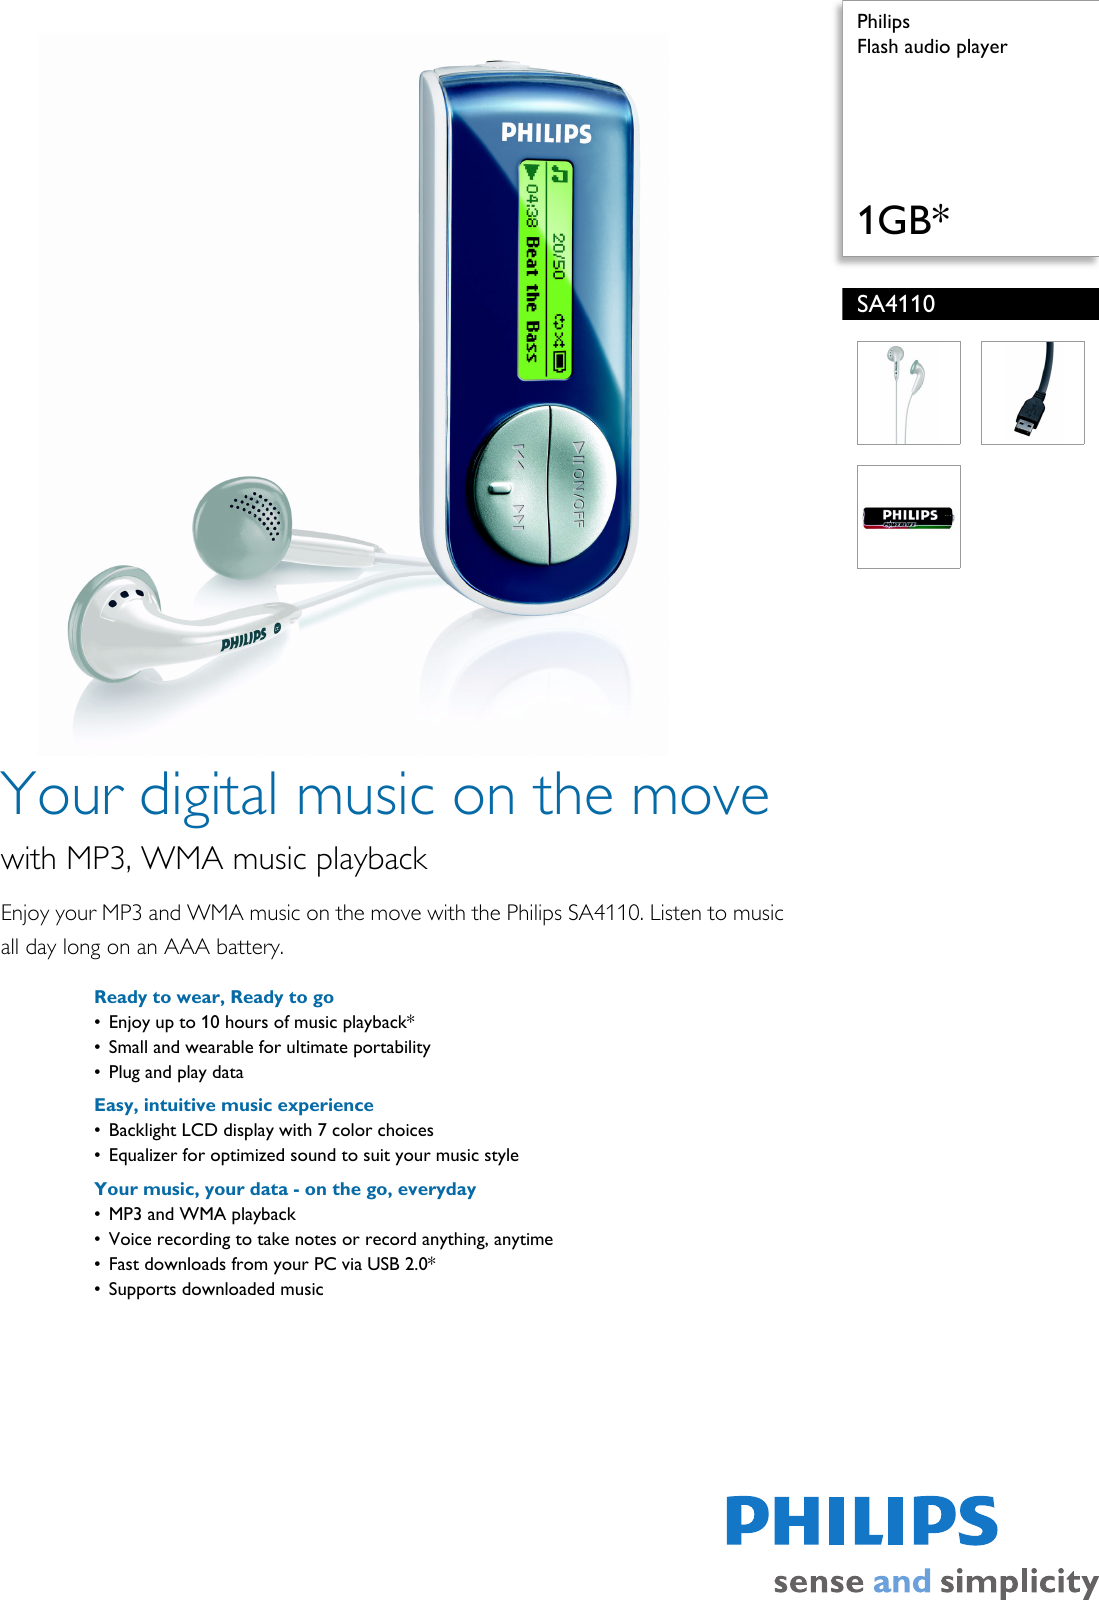 DRIVER UPDATE: PHILIPS SA411037 MP3 PLAYER